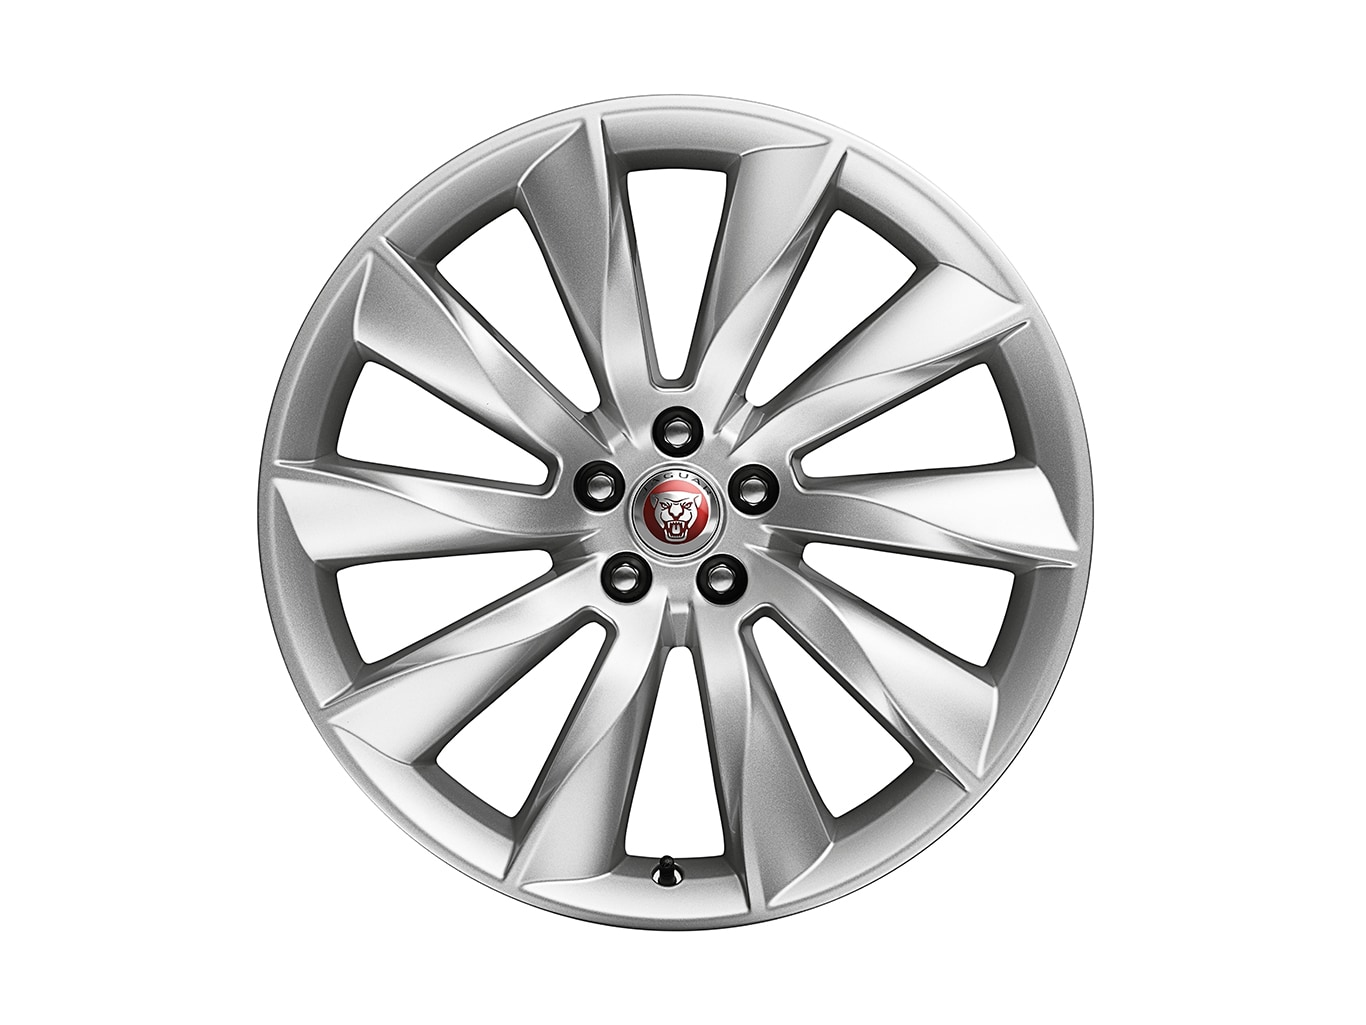 "Alloy Wheel - 20"" Style 1025, 10 spoke, Front"